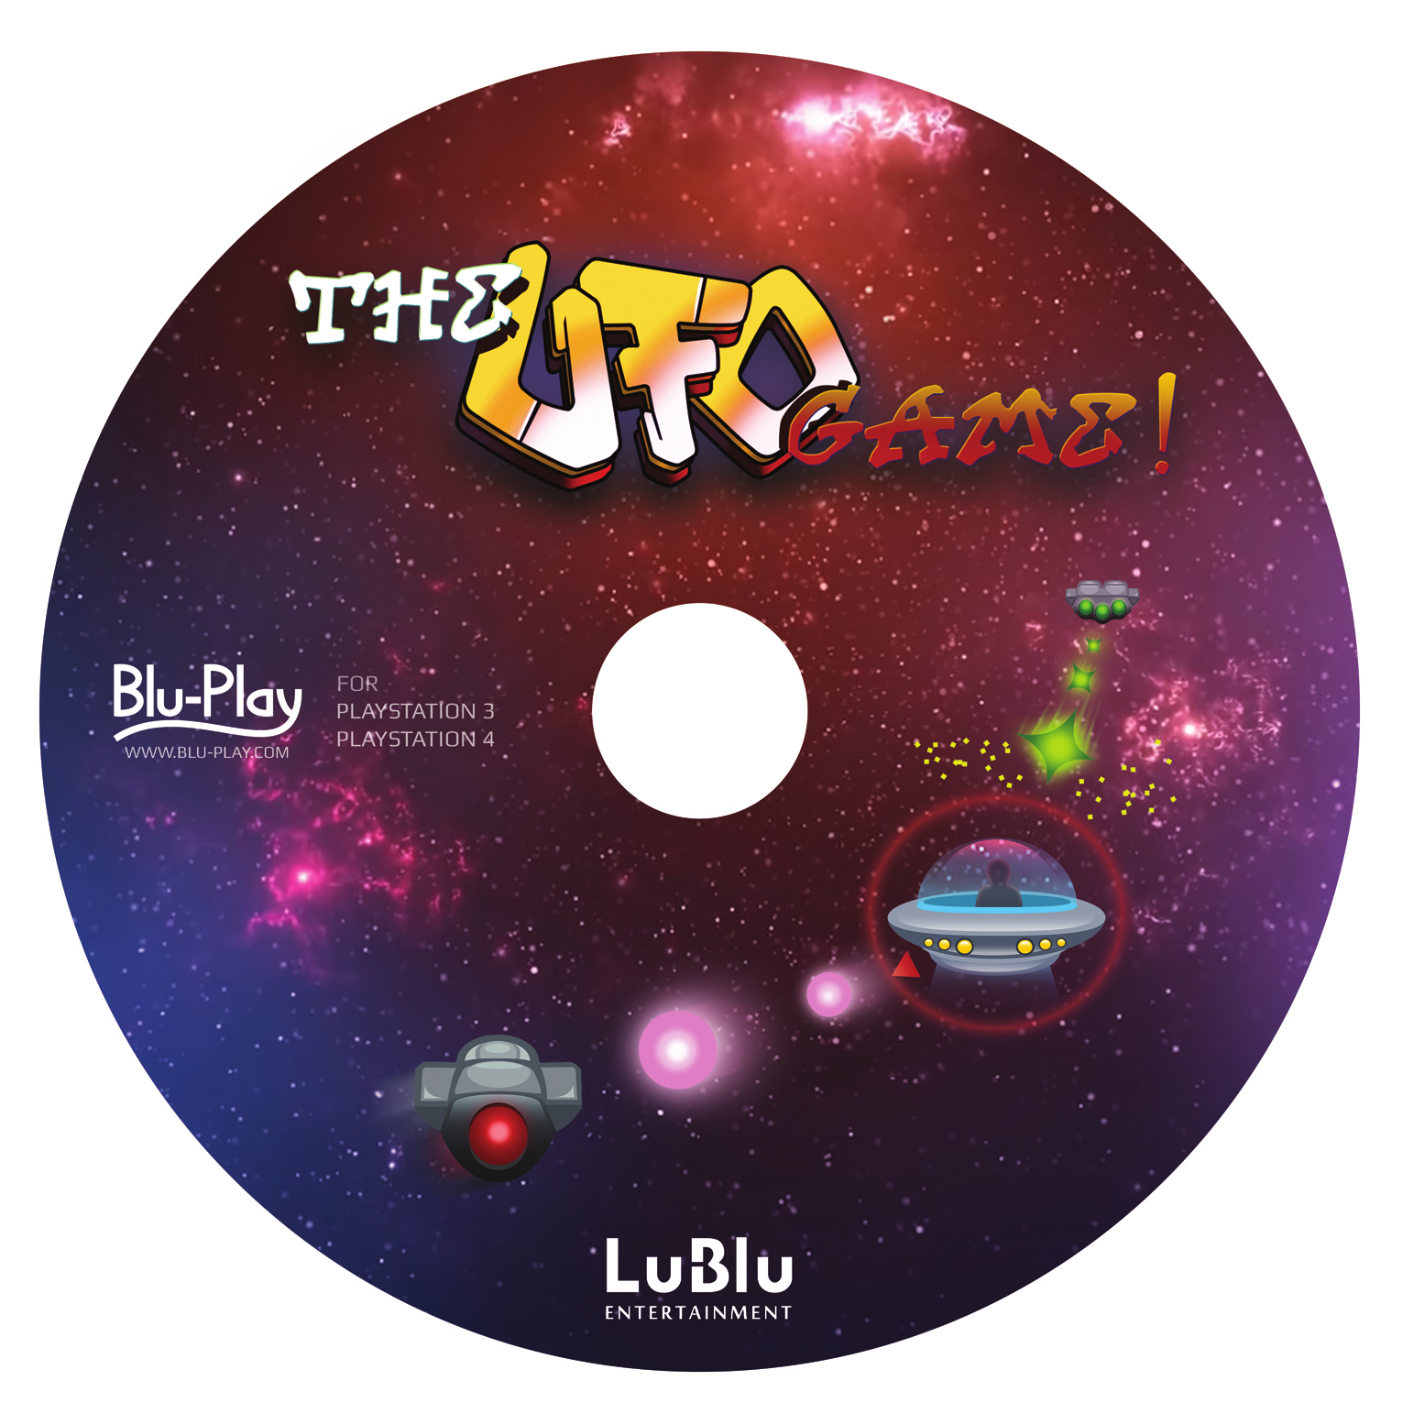 TheUFOGame-DiscLabel.png